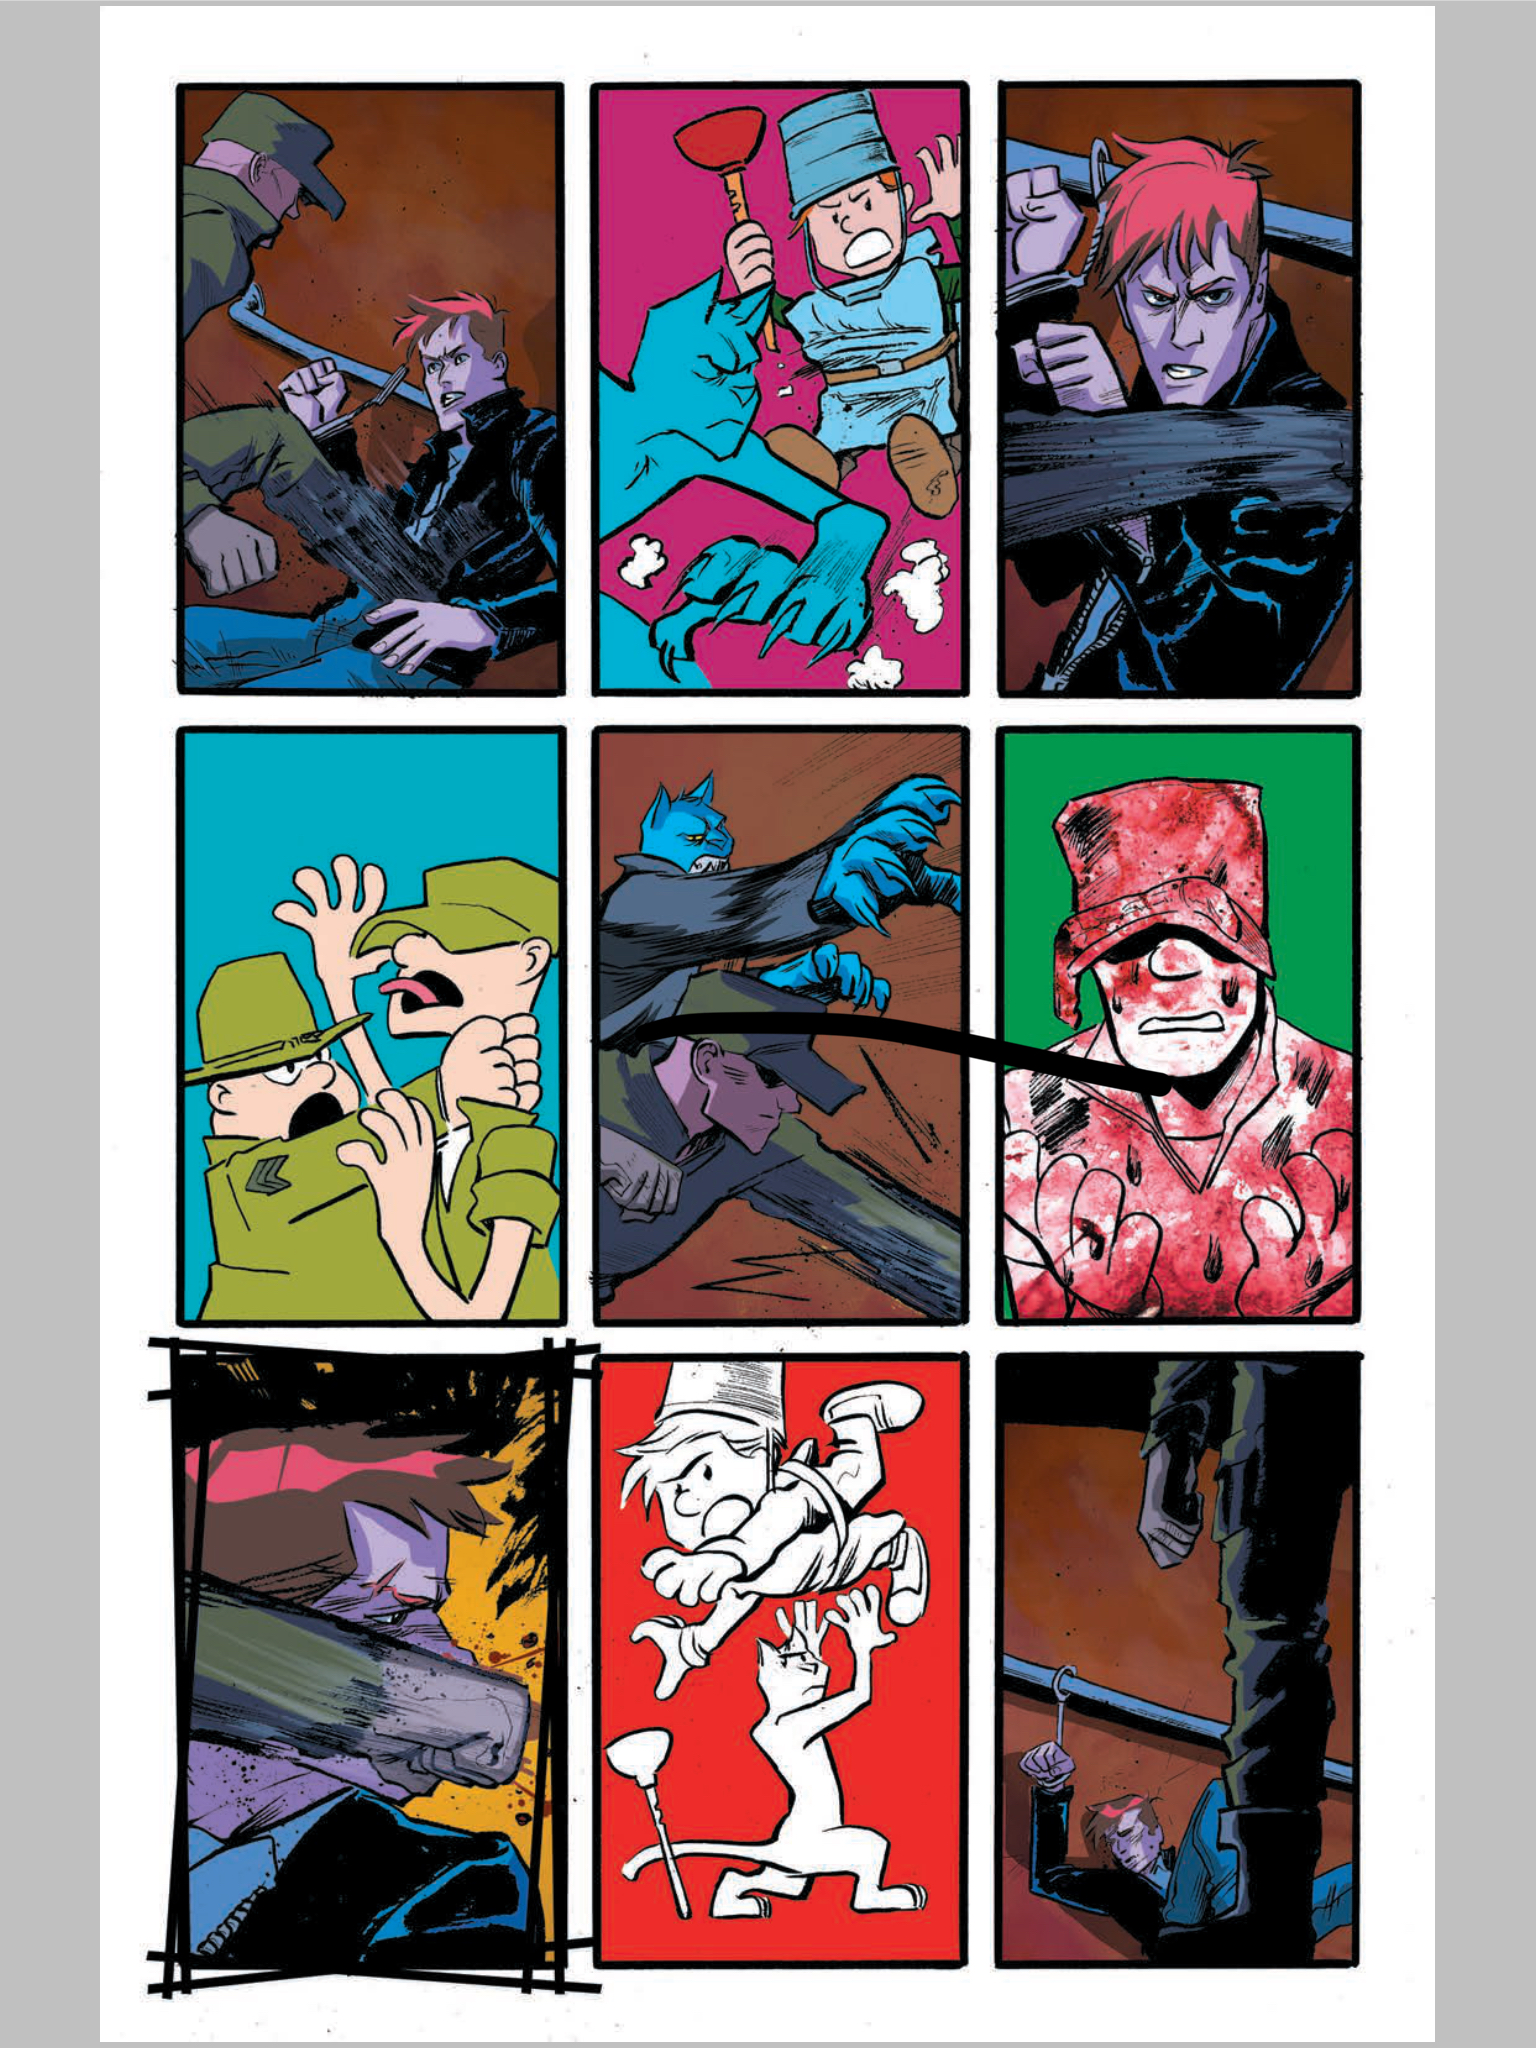 SPENCER & LOCKE 2 #1 nine-panel page shows all Pepose's and Santiago's influences.